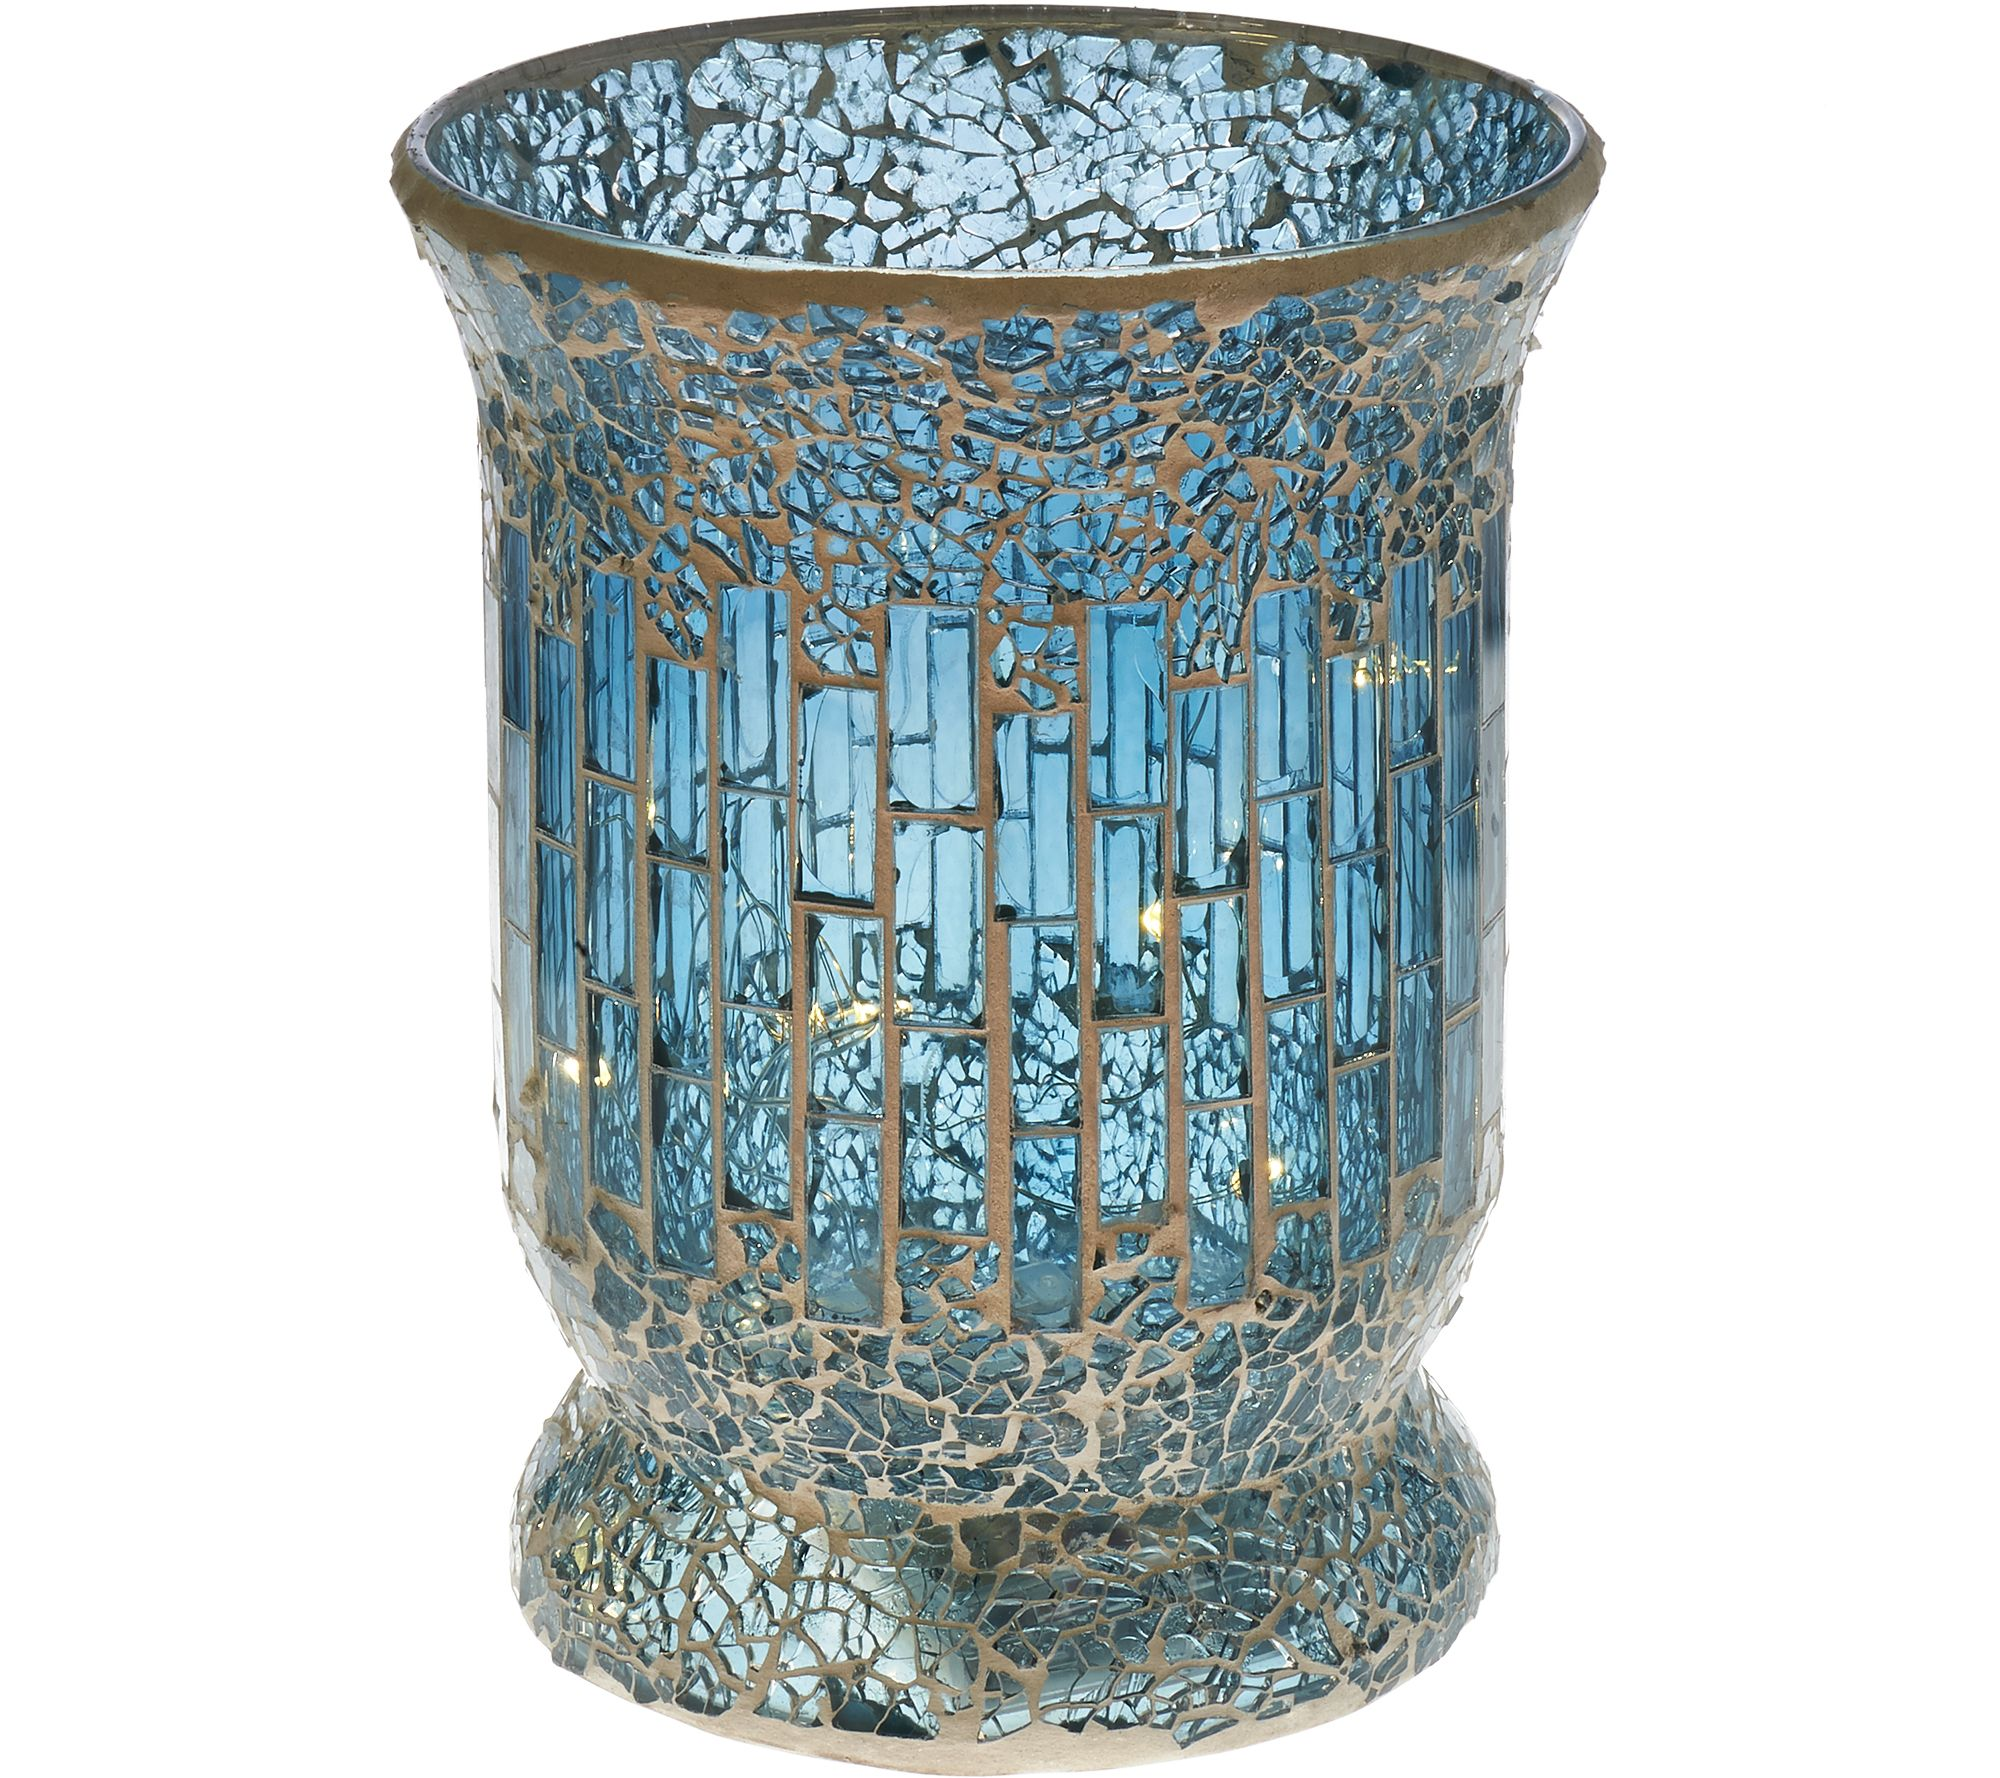 8 glass mosaic tiled vase with micro lights by valerie page 1 8 glass mosaic tiled vase with micro lights by valerie page 1 qvc reviewsmspy